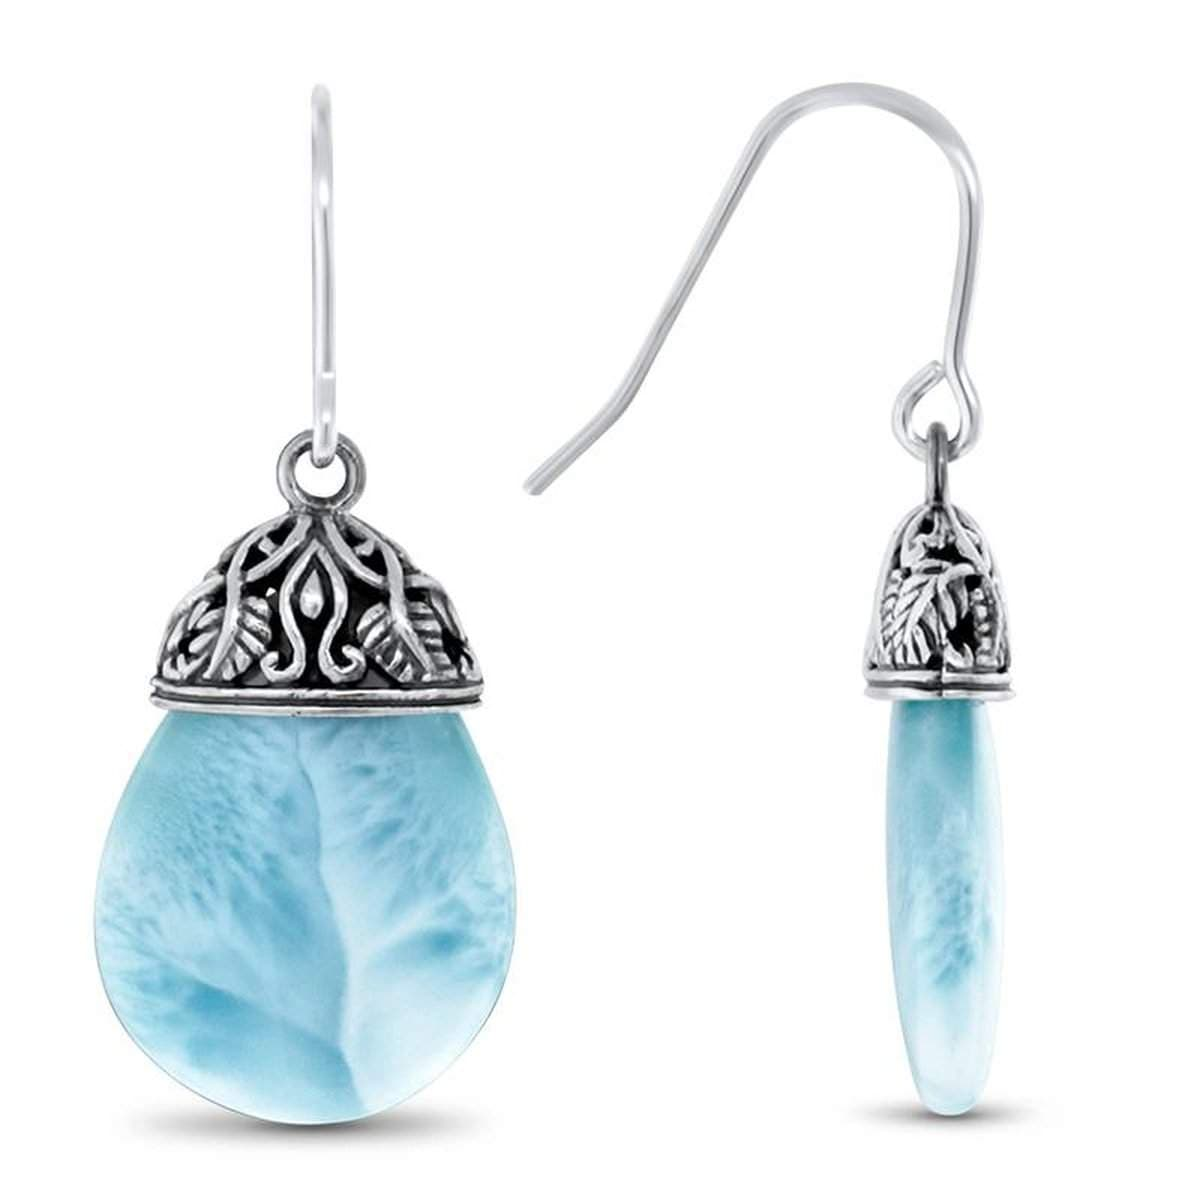 Alana Earrings - Ealan00-00-Marahlago Larimar-Renee Taylor Gallery